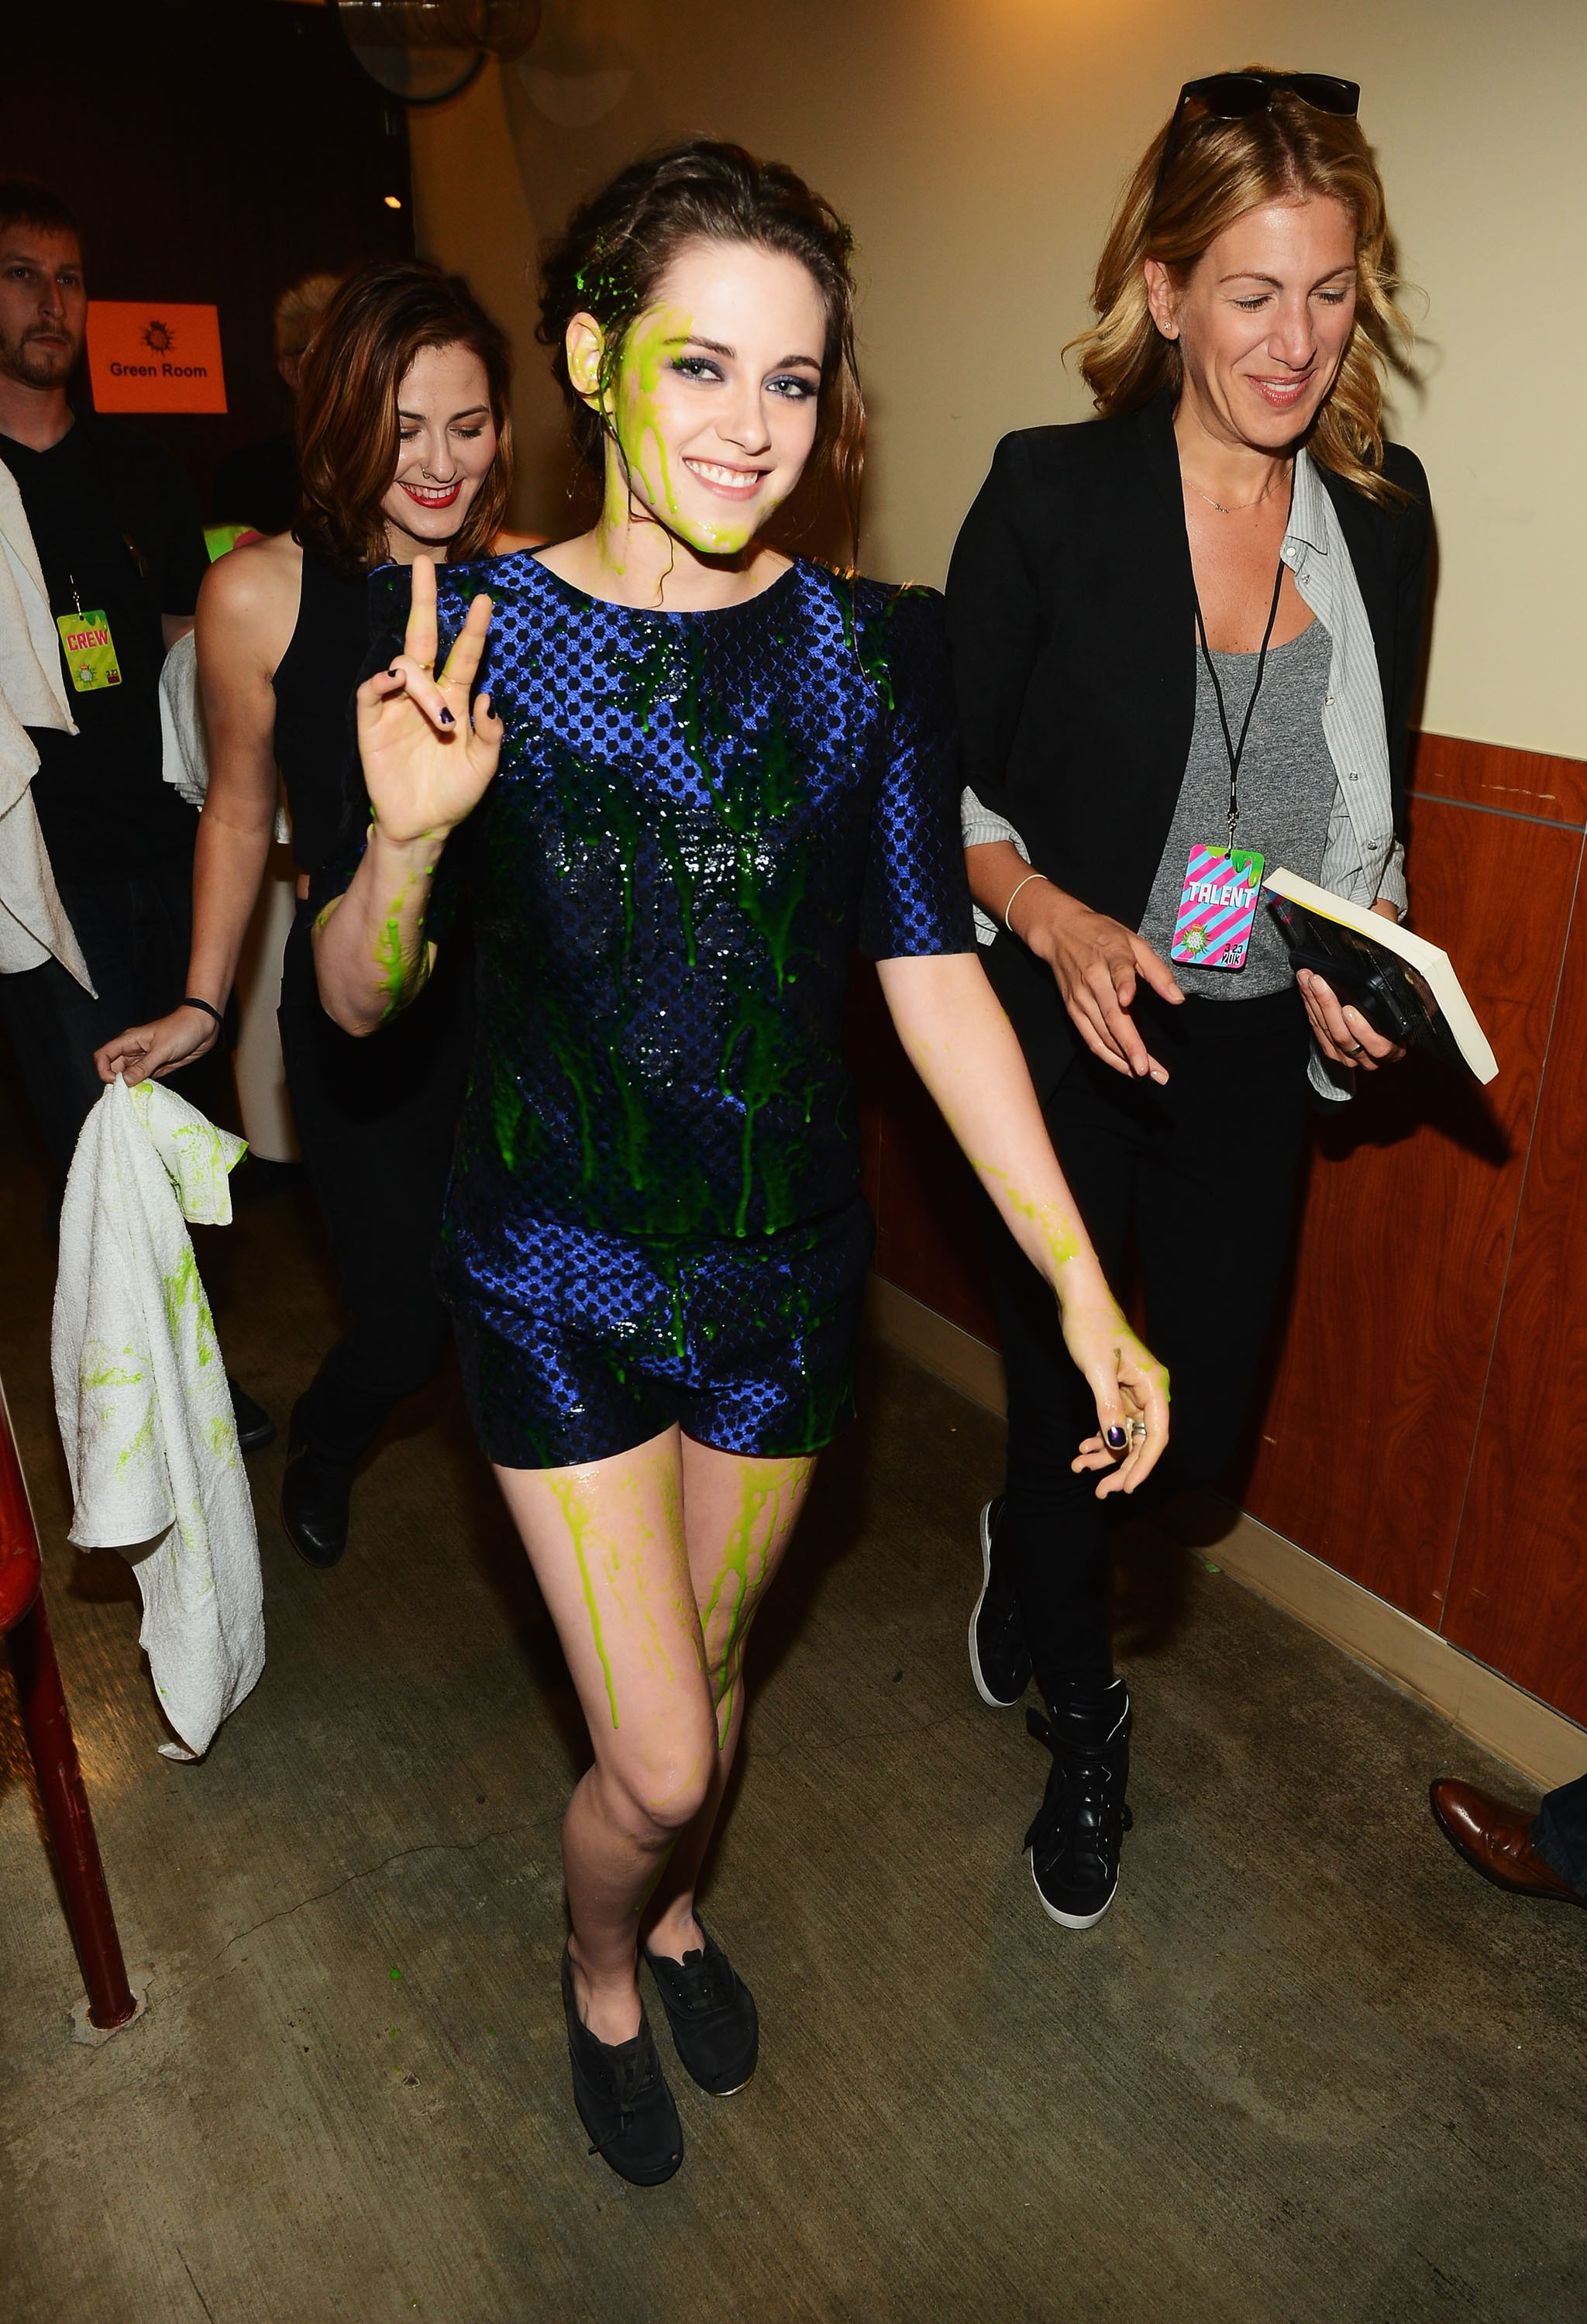 Kristen Stewart looked stunning in slime after winning the favorite actress award at the Kids' Choice Awards in LA in March.